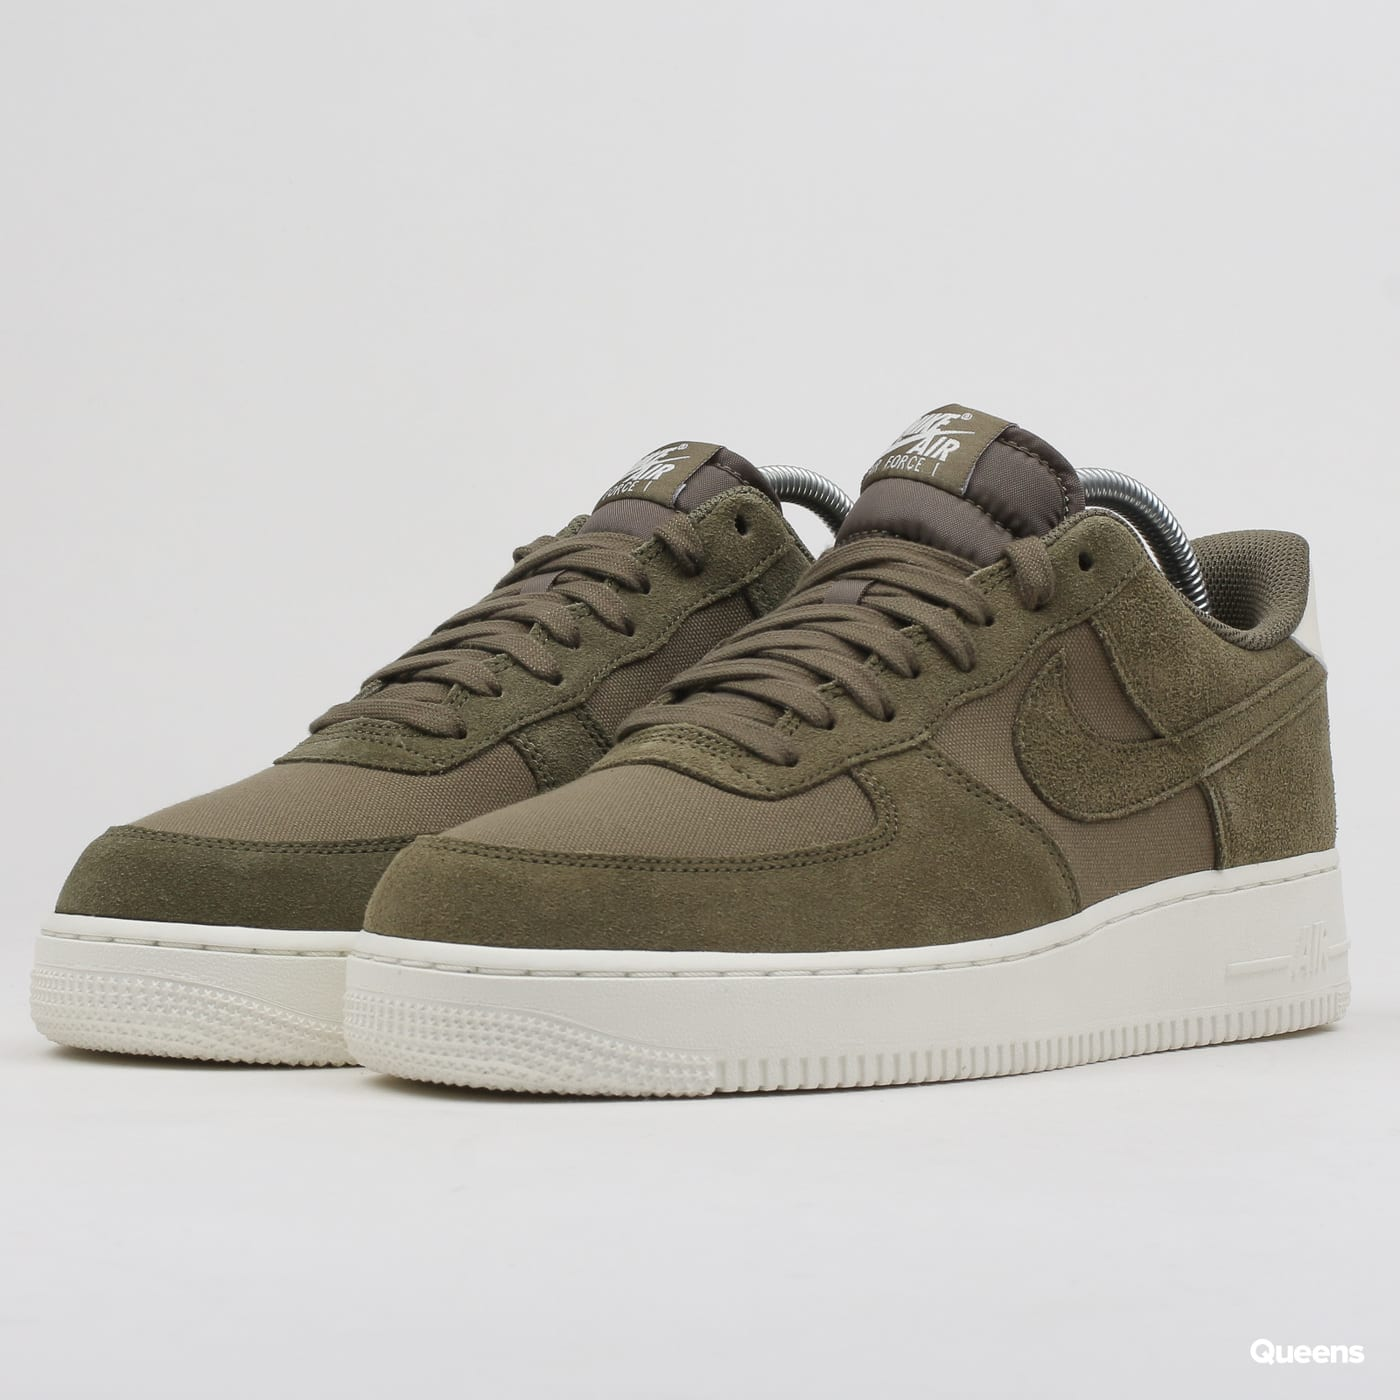 newest 3dbbd 5ea3a Sneakers Nike Air Force 1  07 Suede (AO3835-200)– Queens 💚